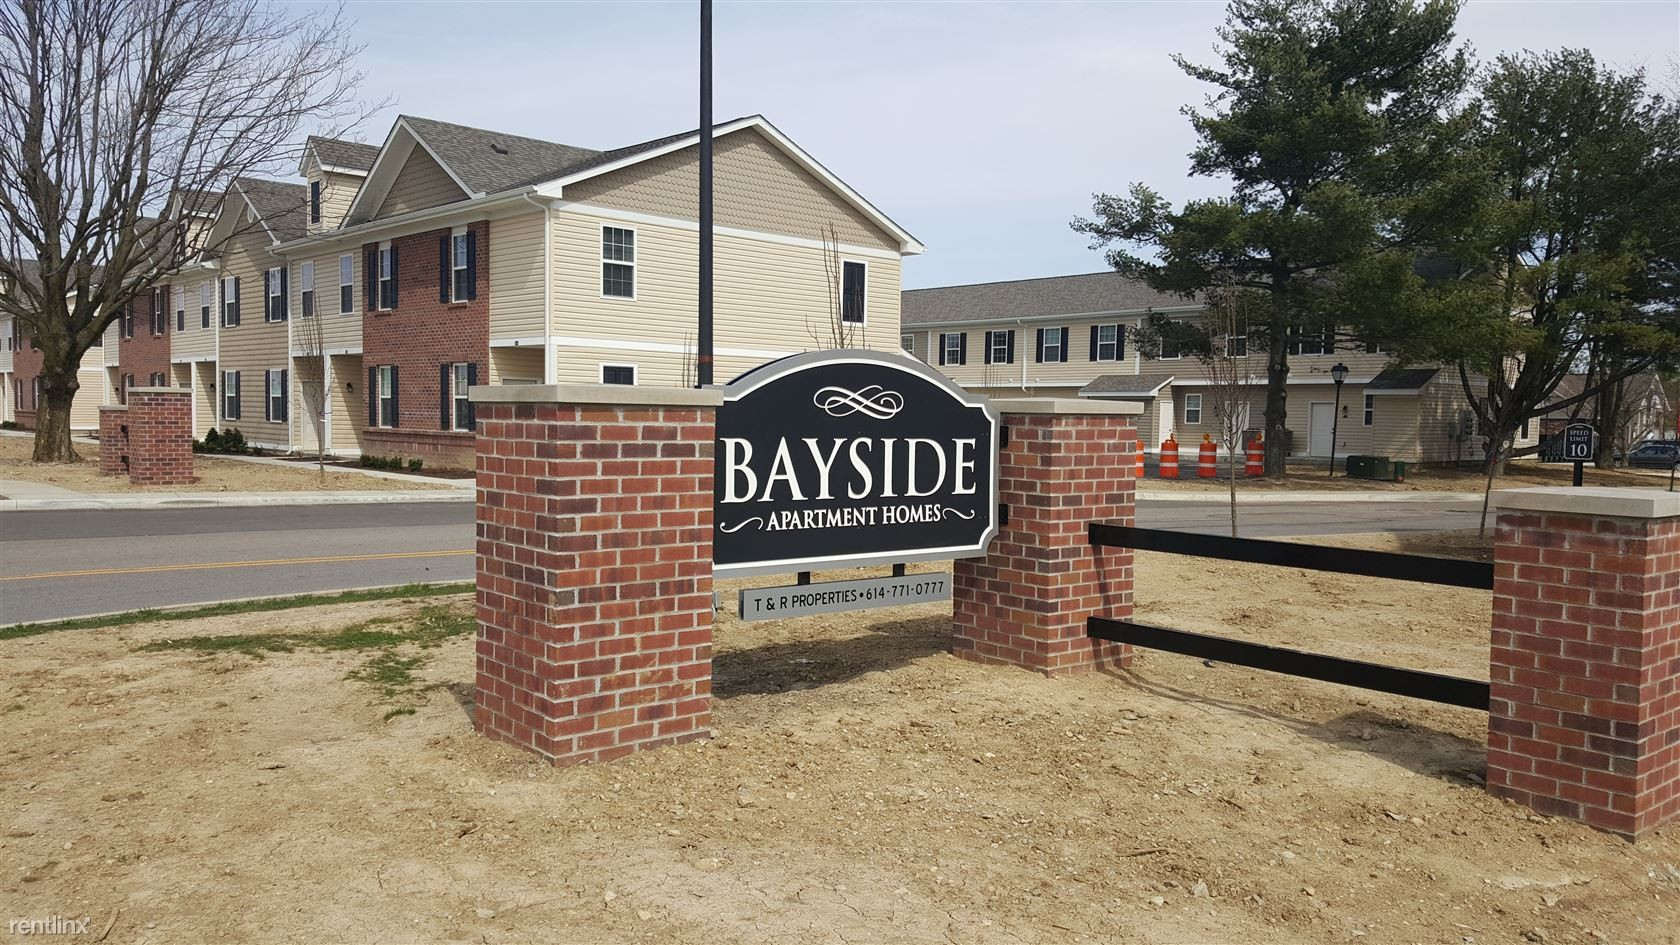 Bayside apartment homes apartments for rent 2332 asics - One bedroom apartments hilliard ohio ...